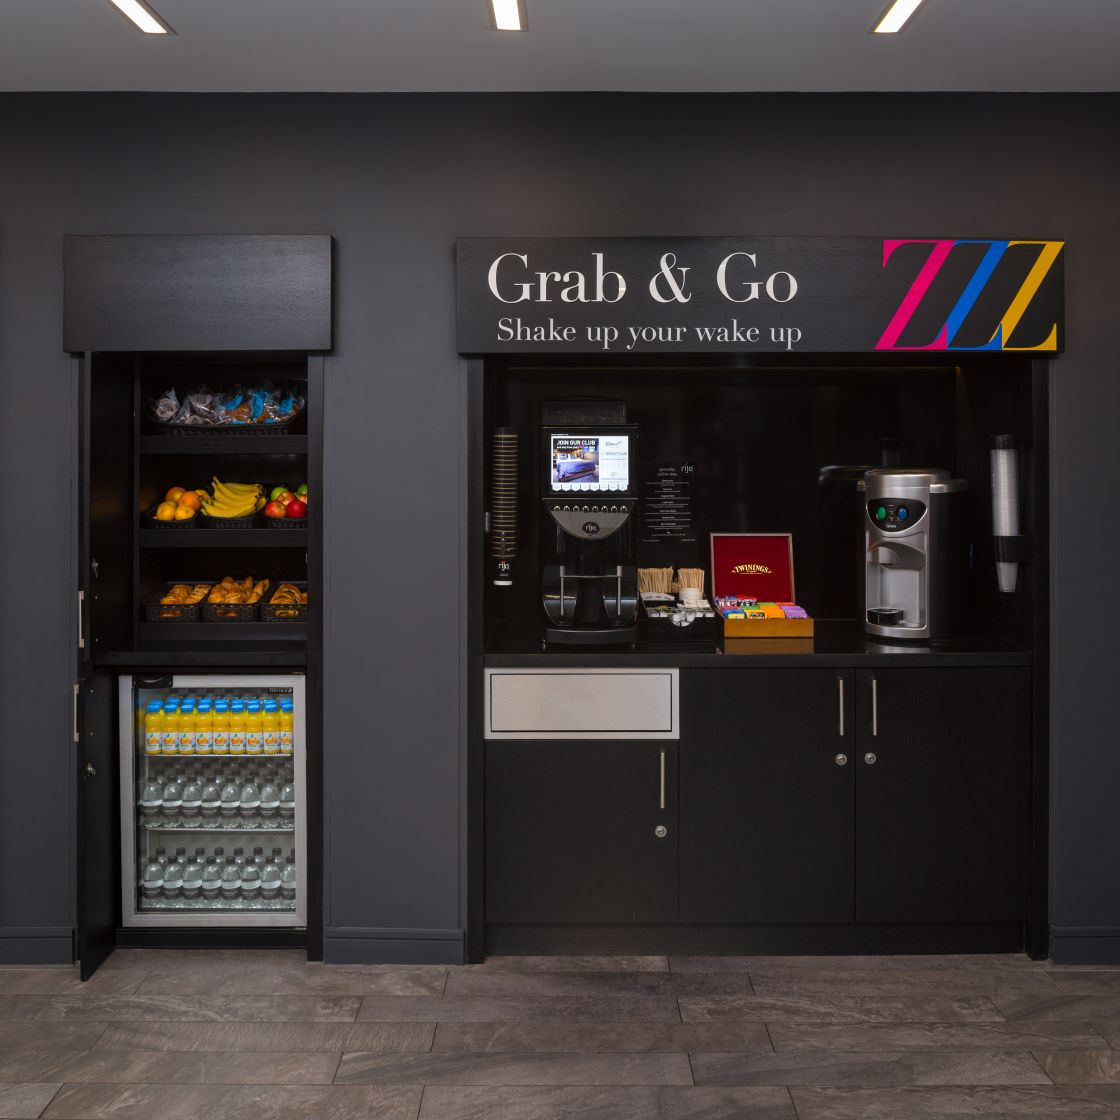 Grab & Go Station with fruit, pastries and Coffee Machine. Student Accommodation in Chester